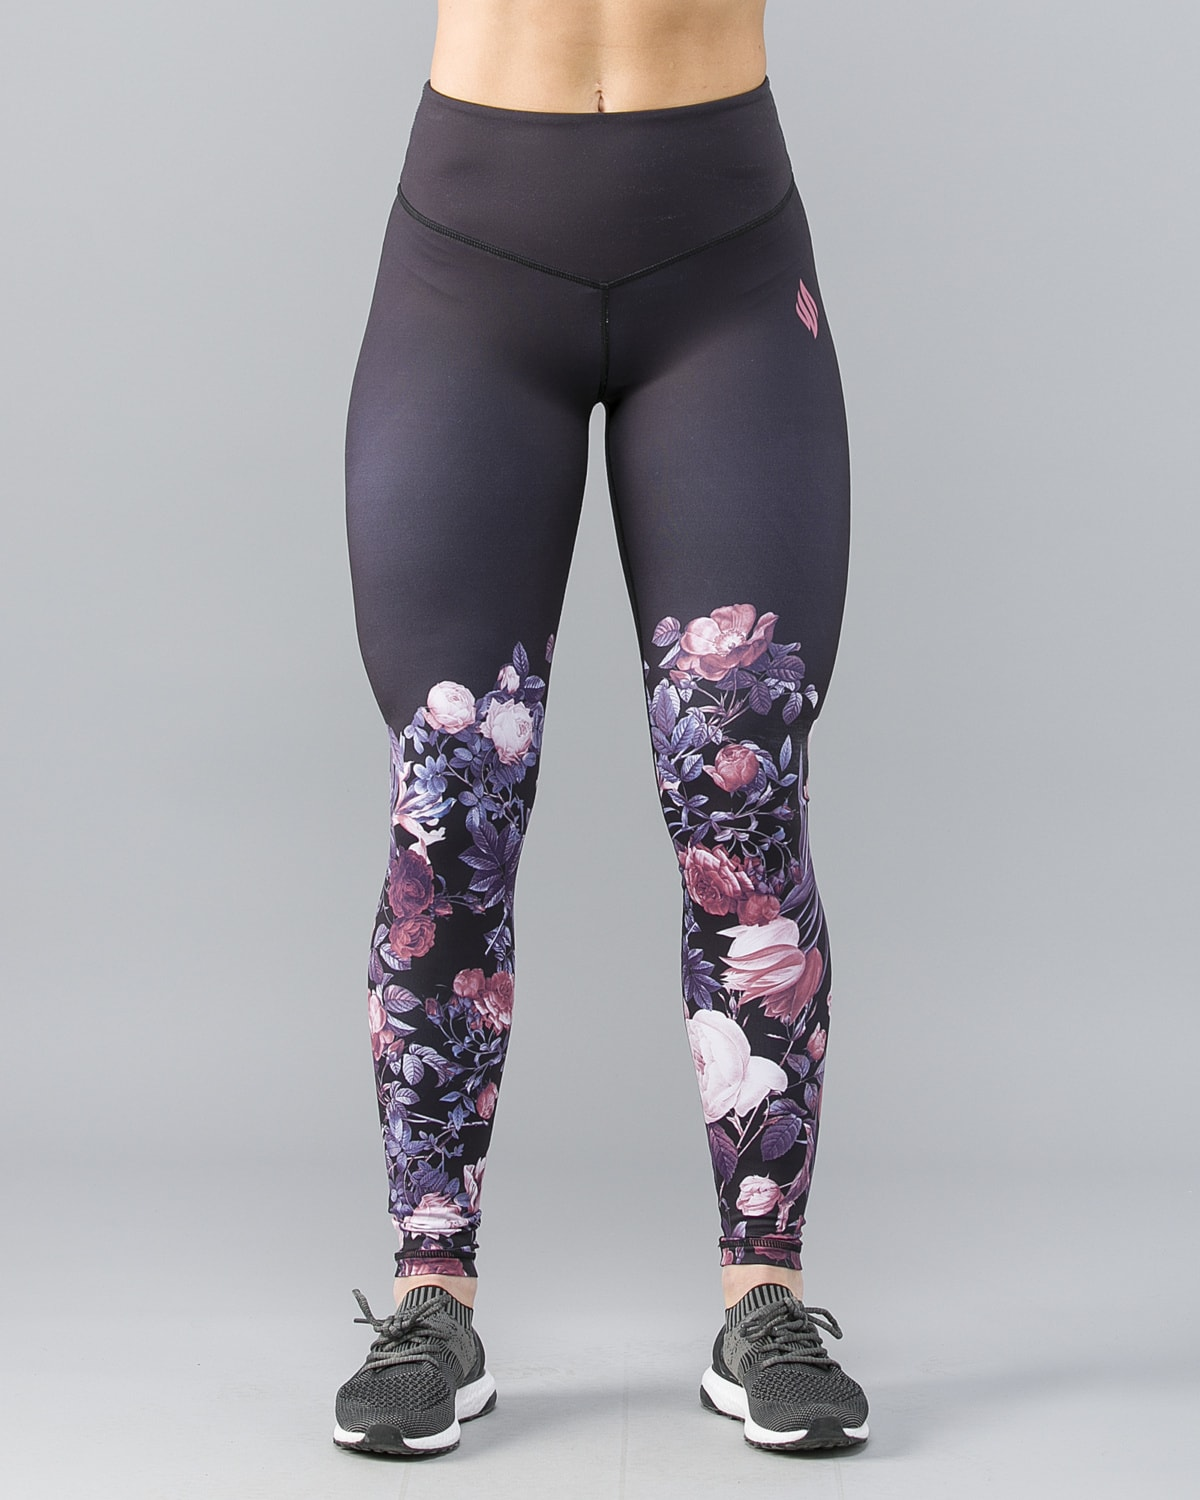 We-Are-Fit-Shea-Tights